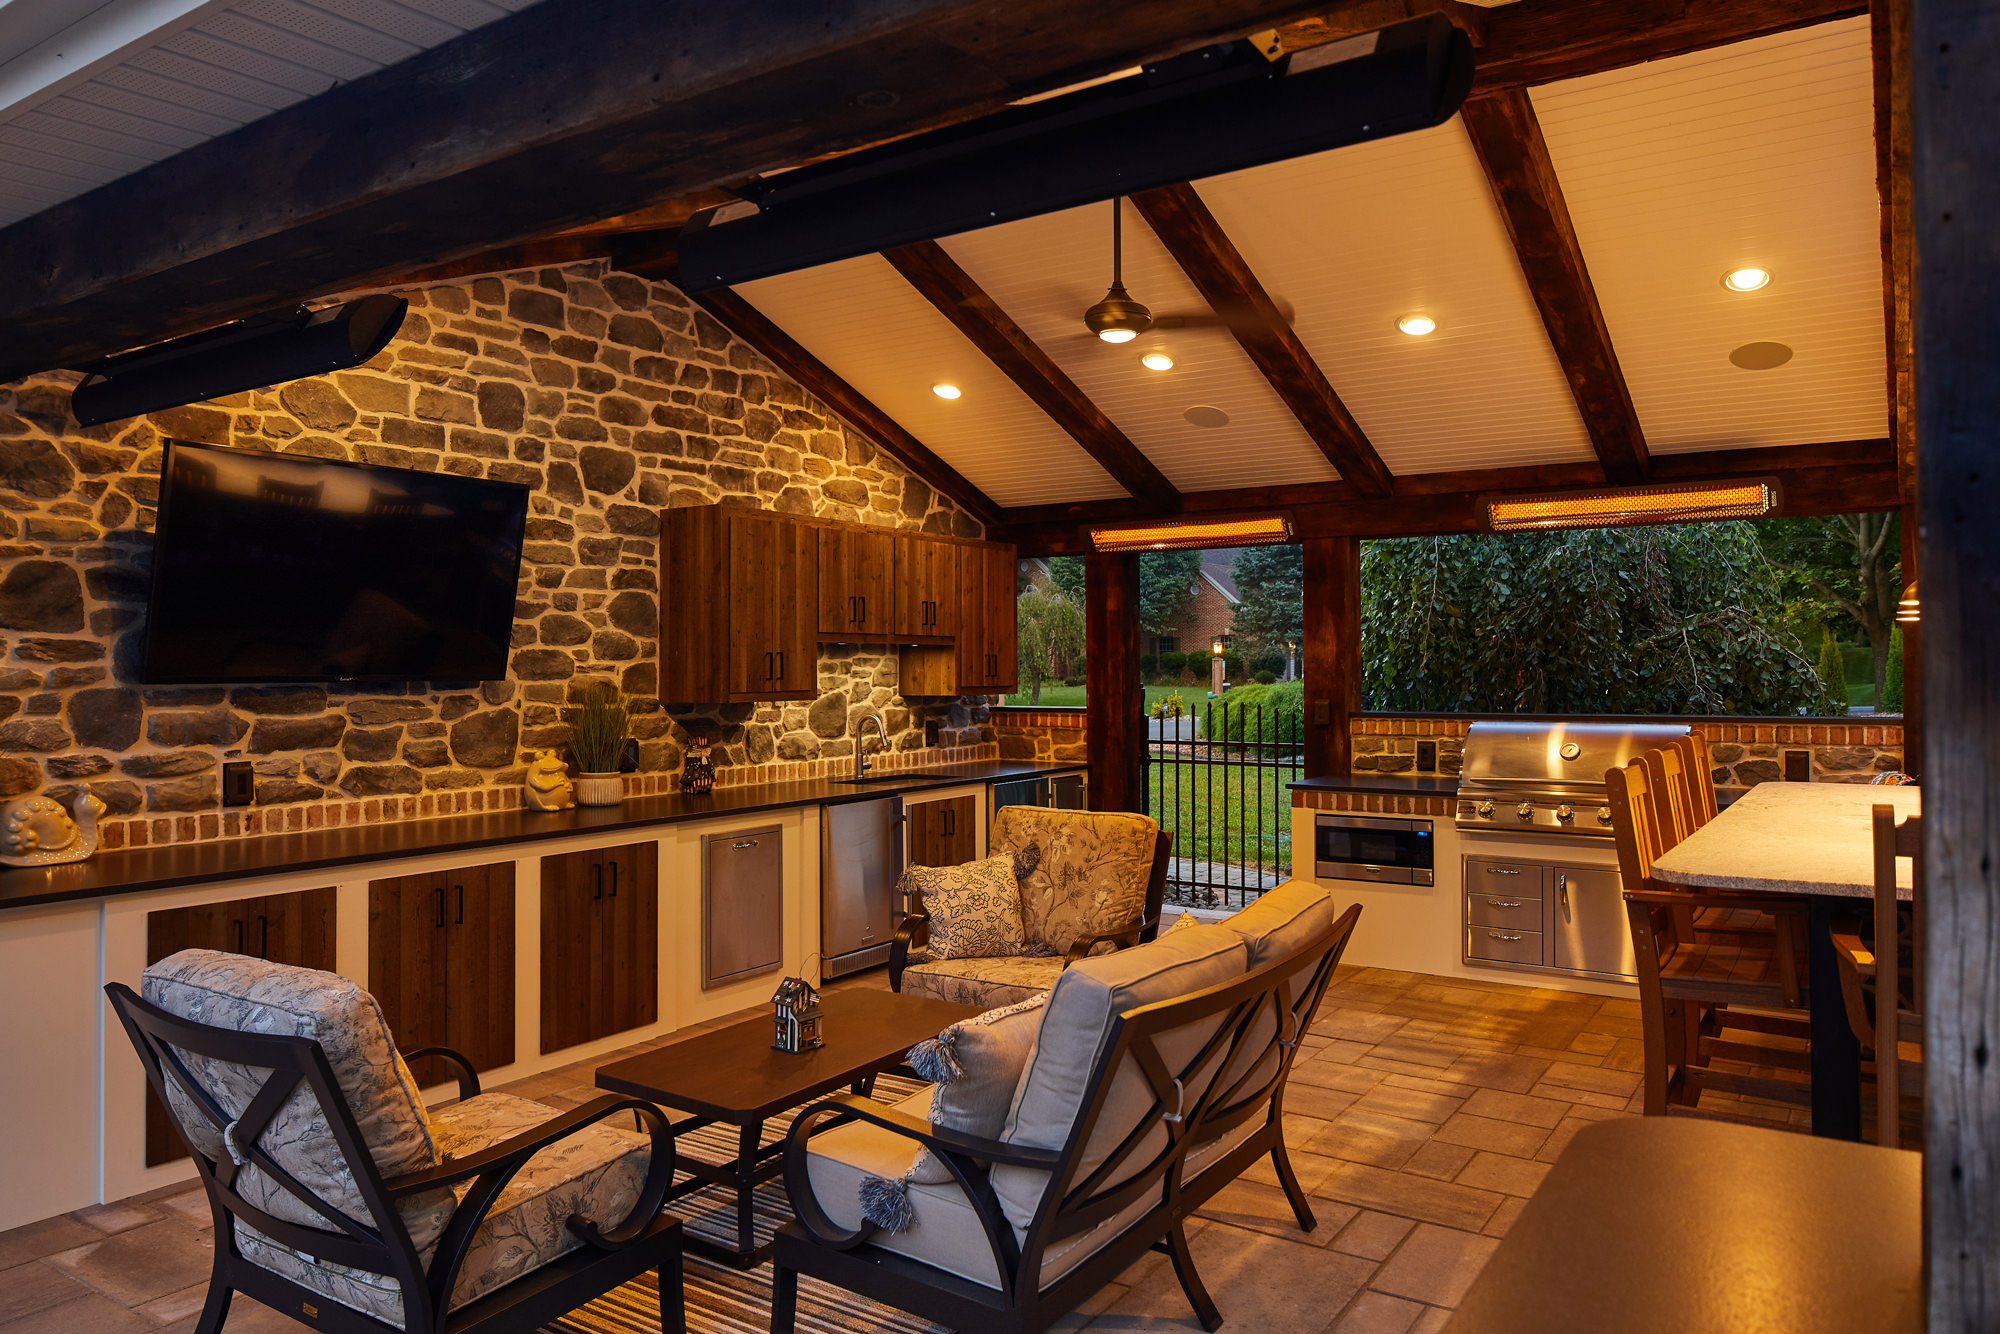 This outdoor living space beautifully combines rustic and contemporary, all while providing ample room for a complete kitchen, storage, dining and lounging!